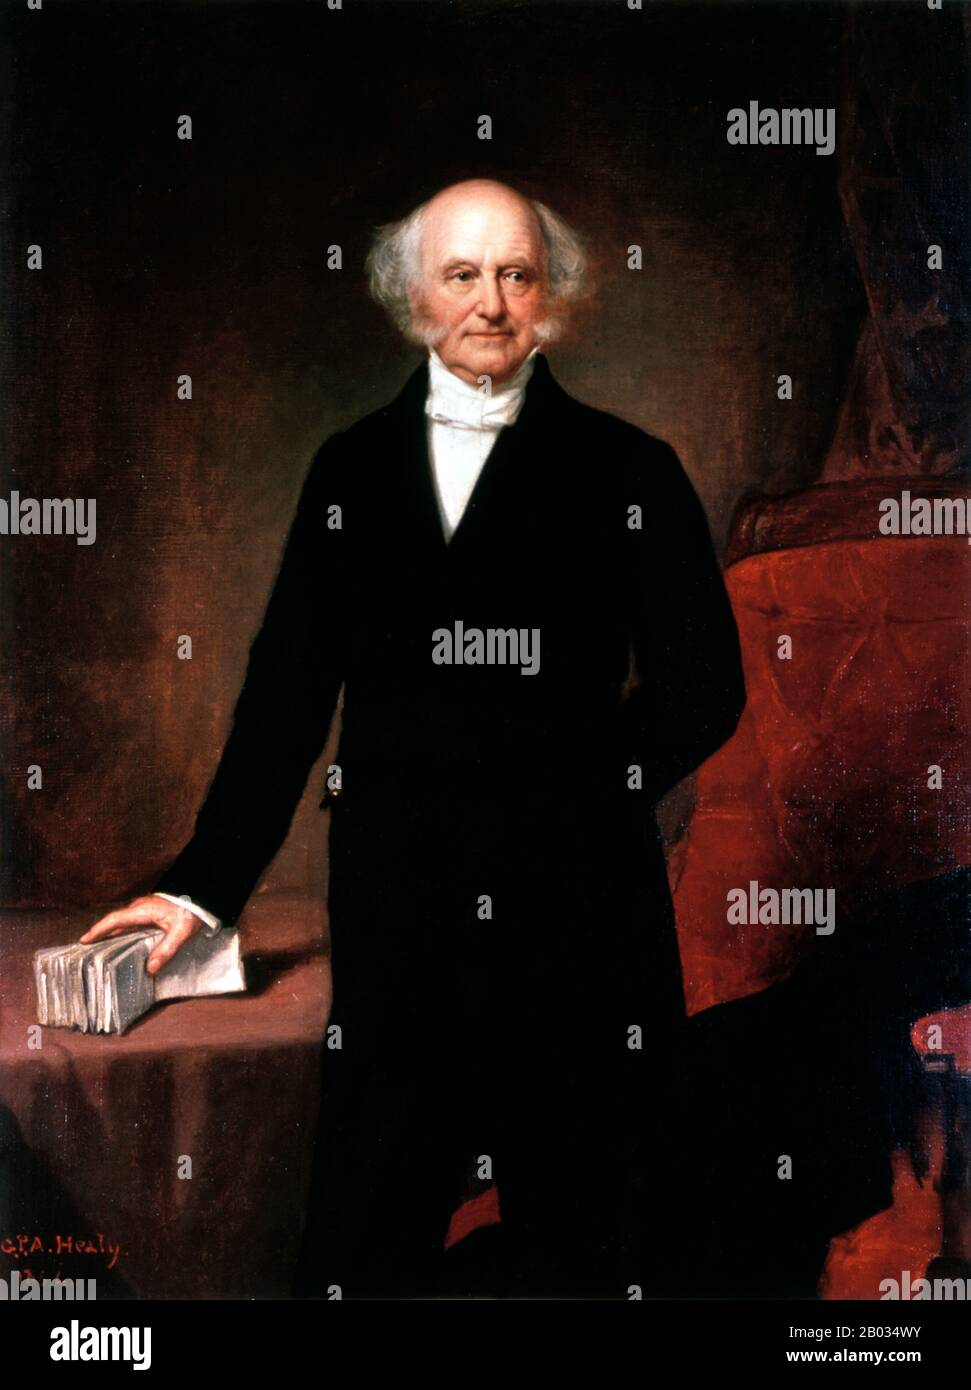 Martin Van Buren ( December 5, 1782 – July 24, 1862) was an American politician who served as the eighth President of the United States (1837–41).  A member of the Democratic Party, he served in a number of senior roles, including eighth Vice President (1833–37) and tenth Secretary of State (1829–31), both under Andrew Jackson. Stock Photo